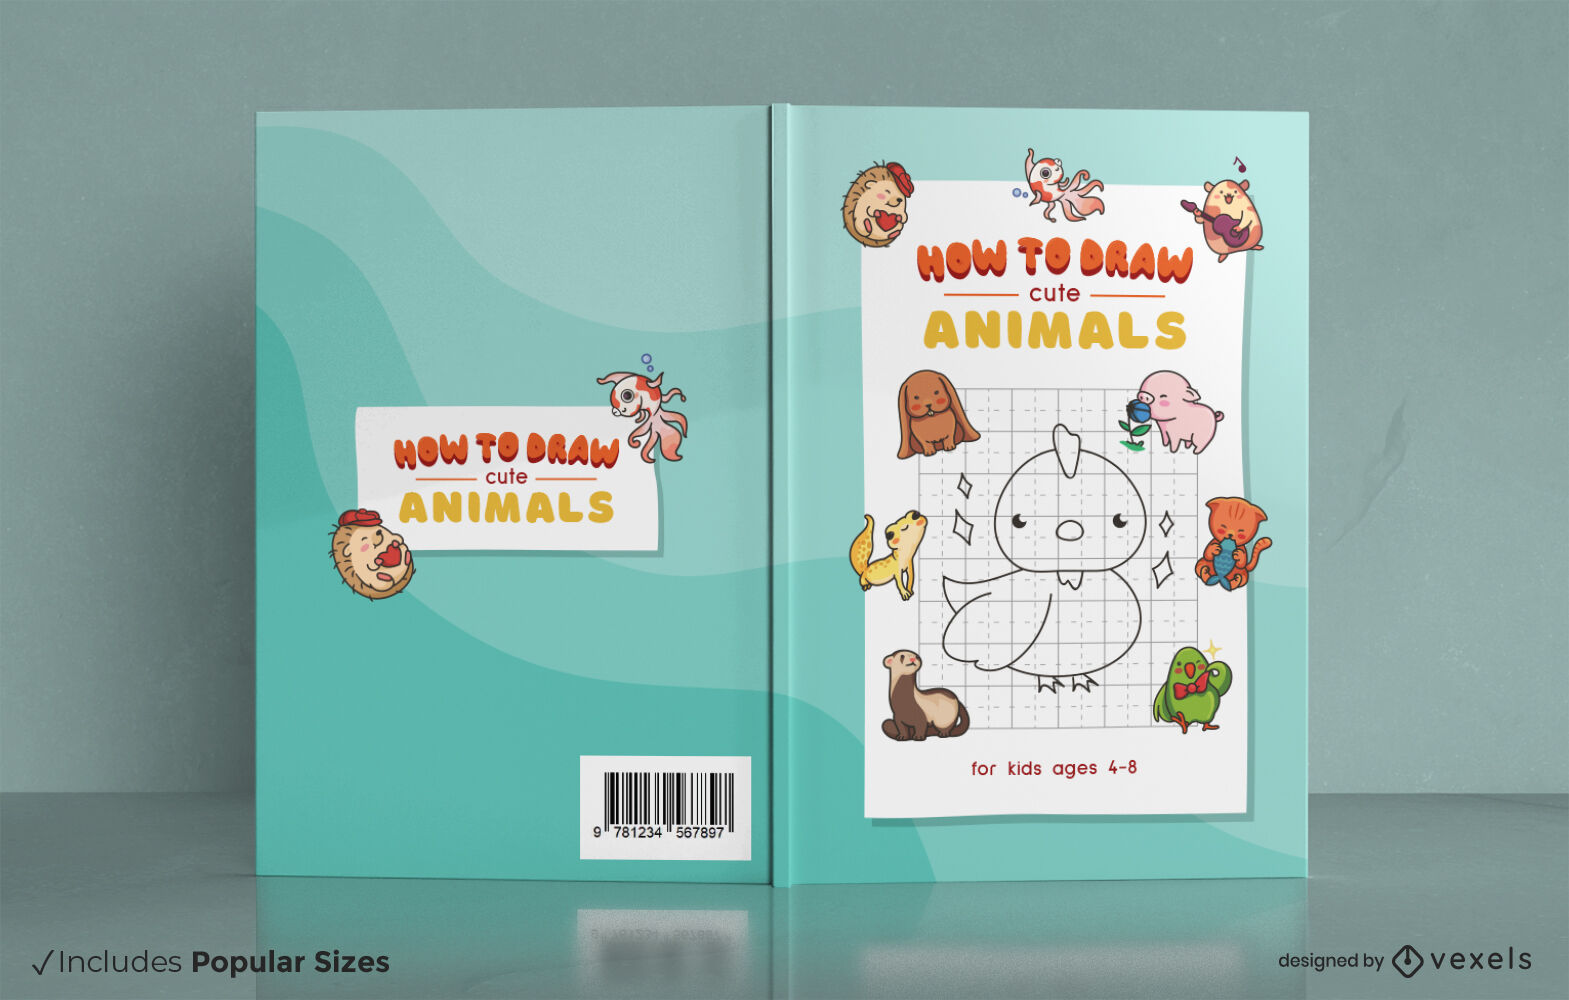 Animals drawing book cover design